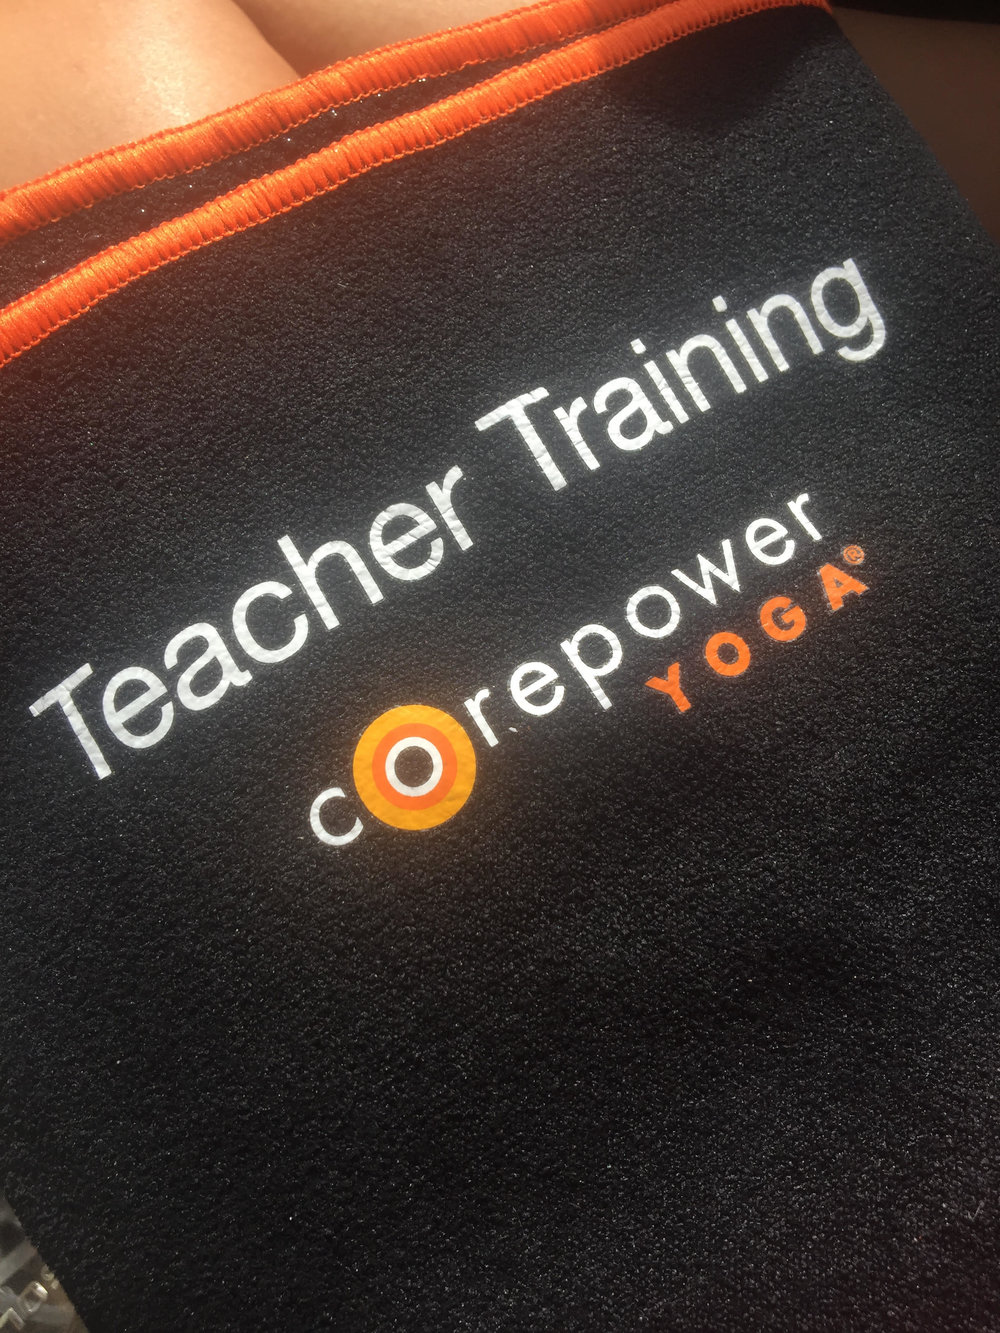 Presents for teachers in training